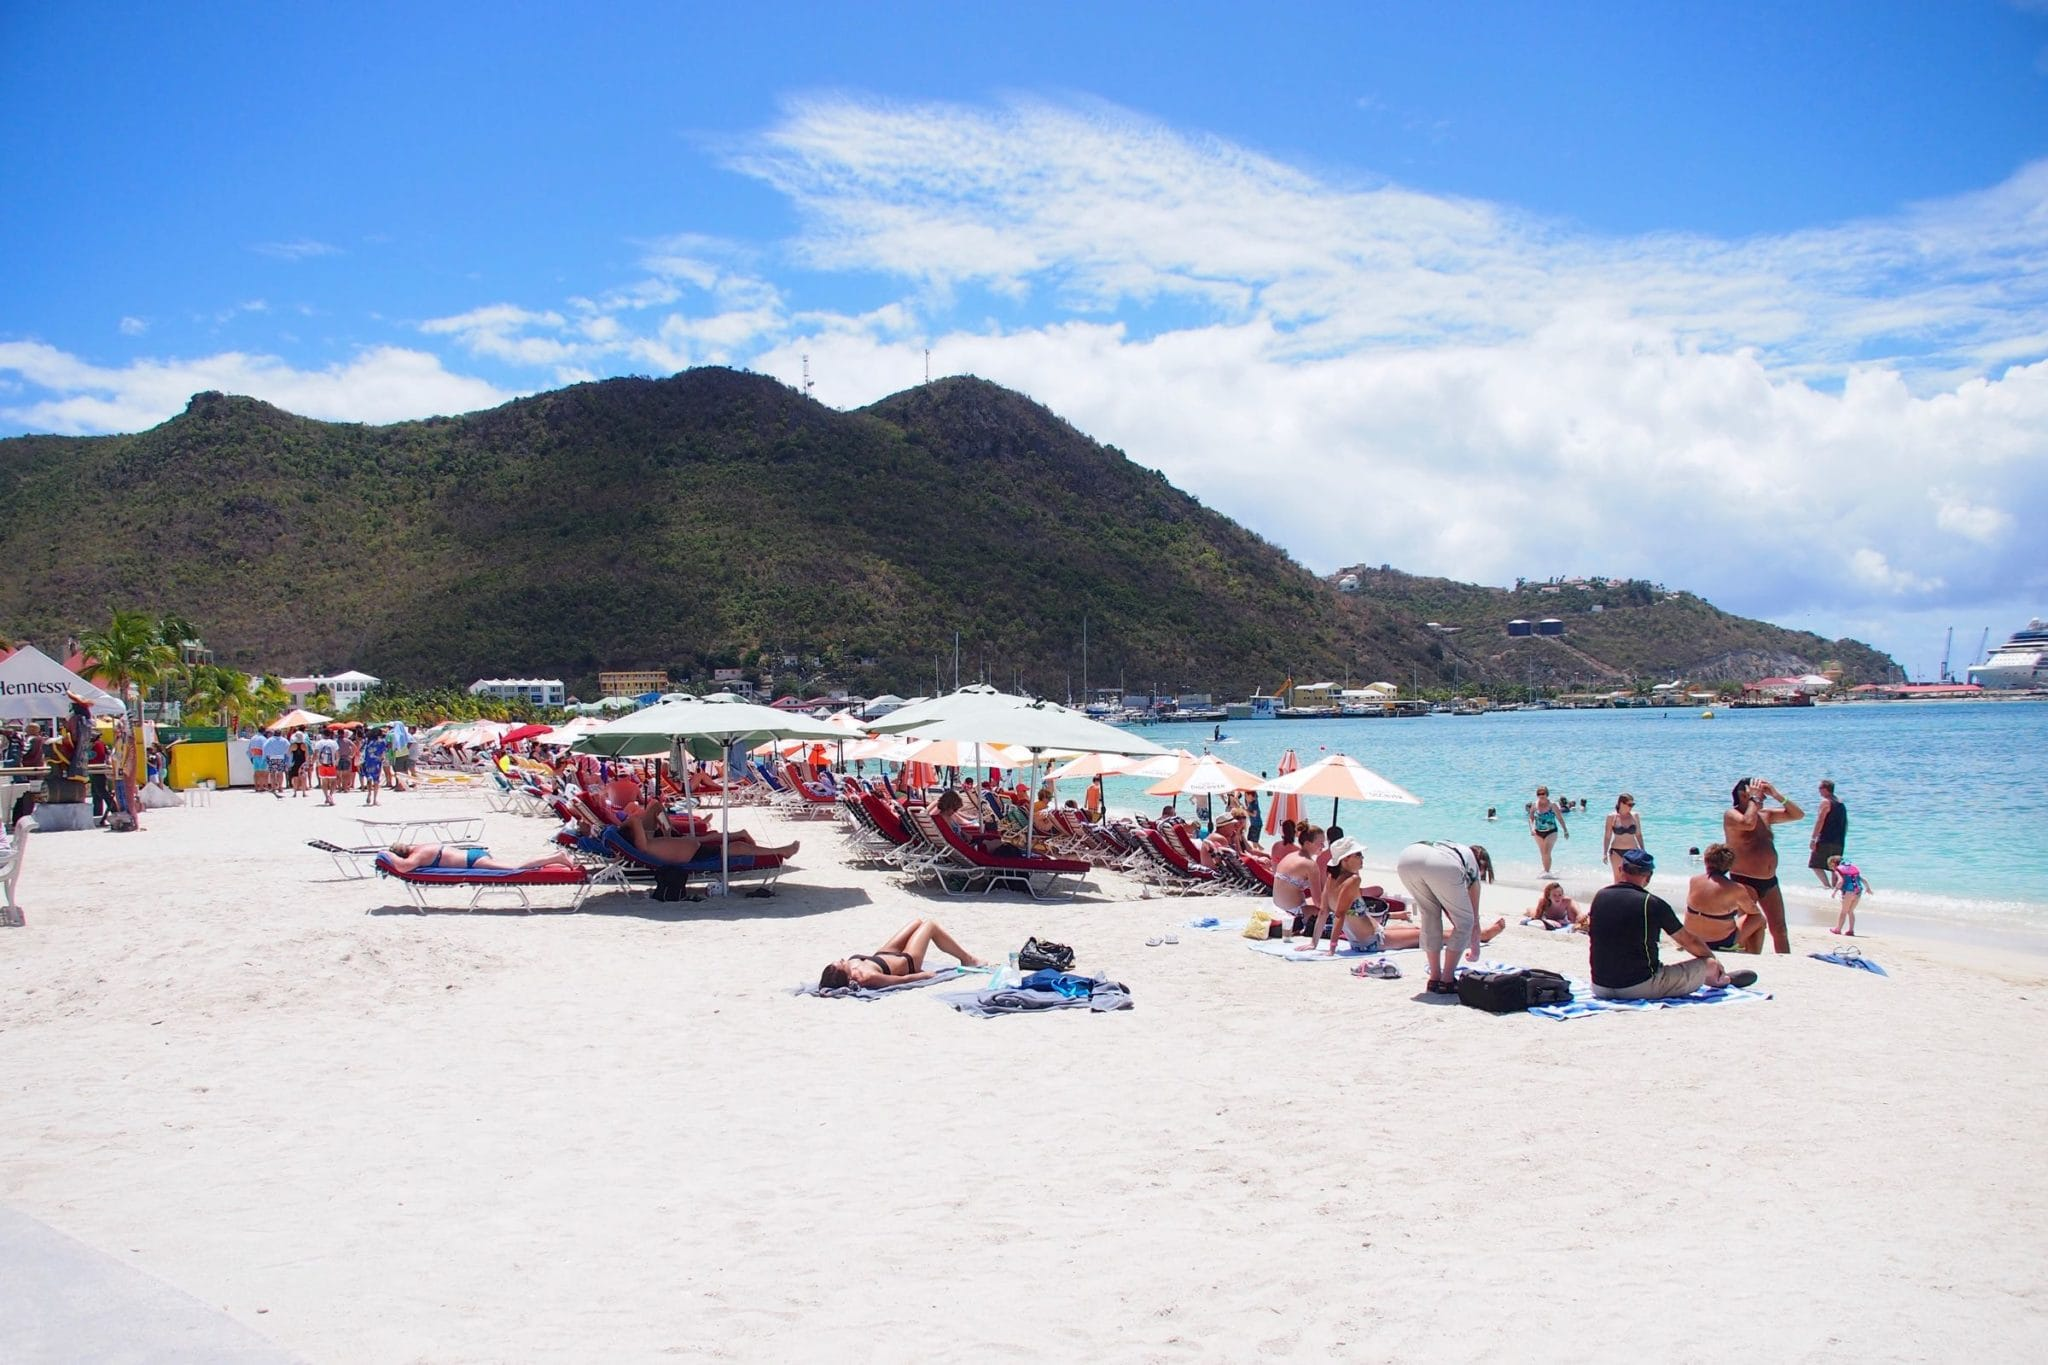 On the beach in Philipsburg, St. Maarten | SBPR